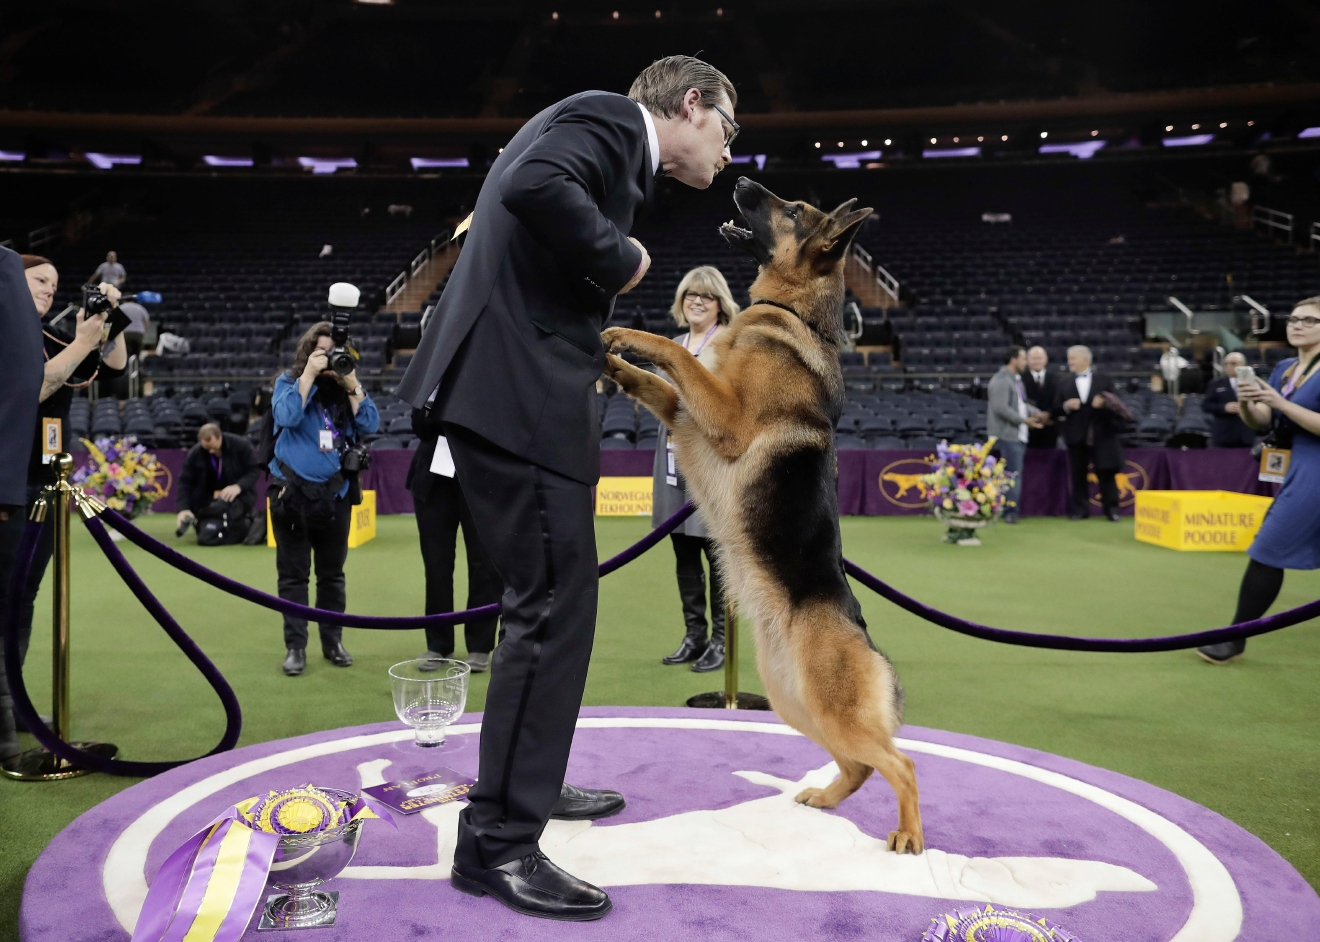 Rumor, a German shepherd, leaps to lick her handler and co-owner Kent Boyles on the face after winning Best in Show at the 141st Westminster Kennel Club Dog Show, early Wednesday, Feb. 15, 2017, in New York. (AP Photo/Julie Jacobson)